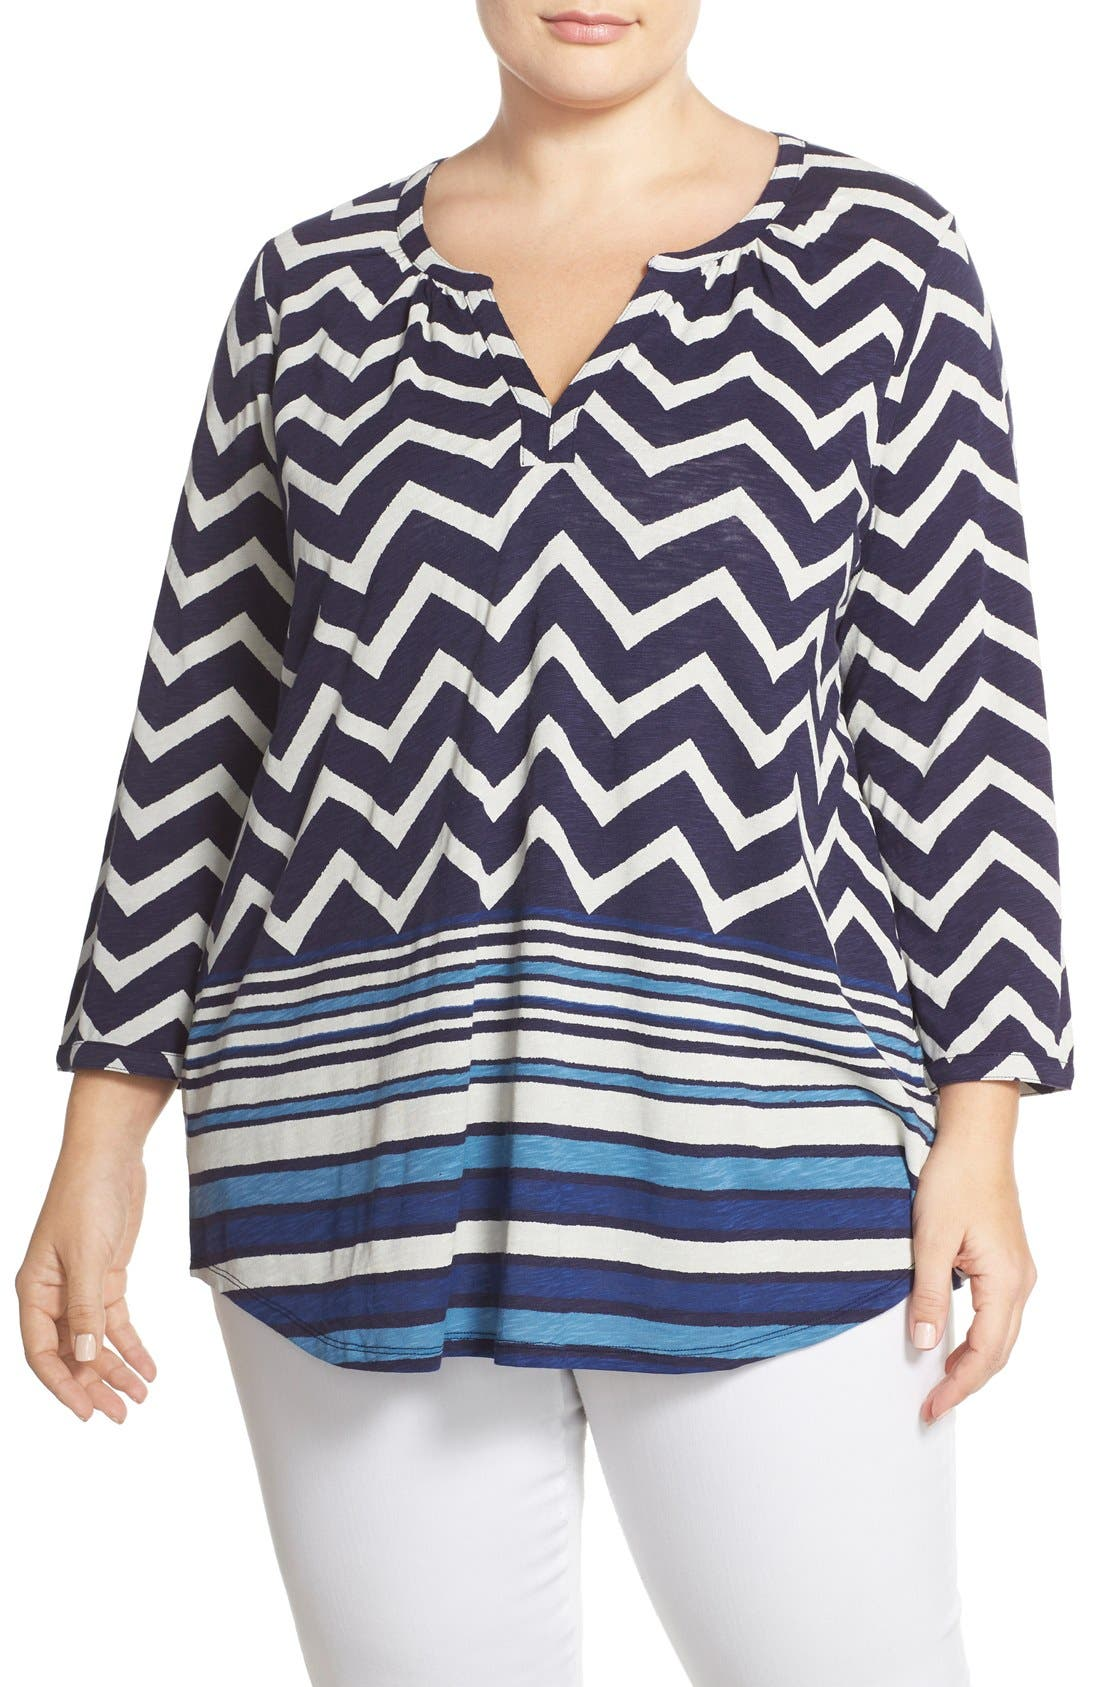 LUCKY BRAND, Chevron Stripe Split Neck Top, Main thumbnail 1, color, 400